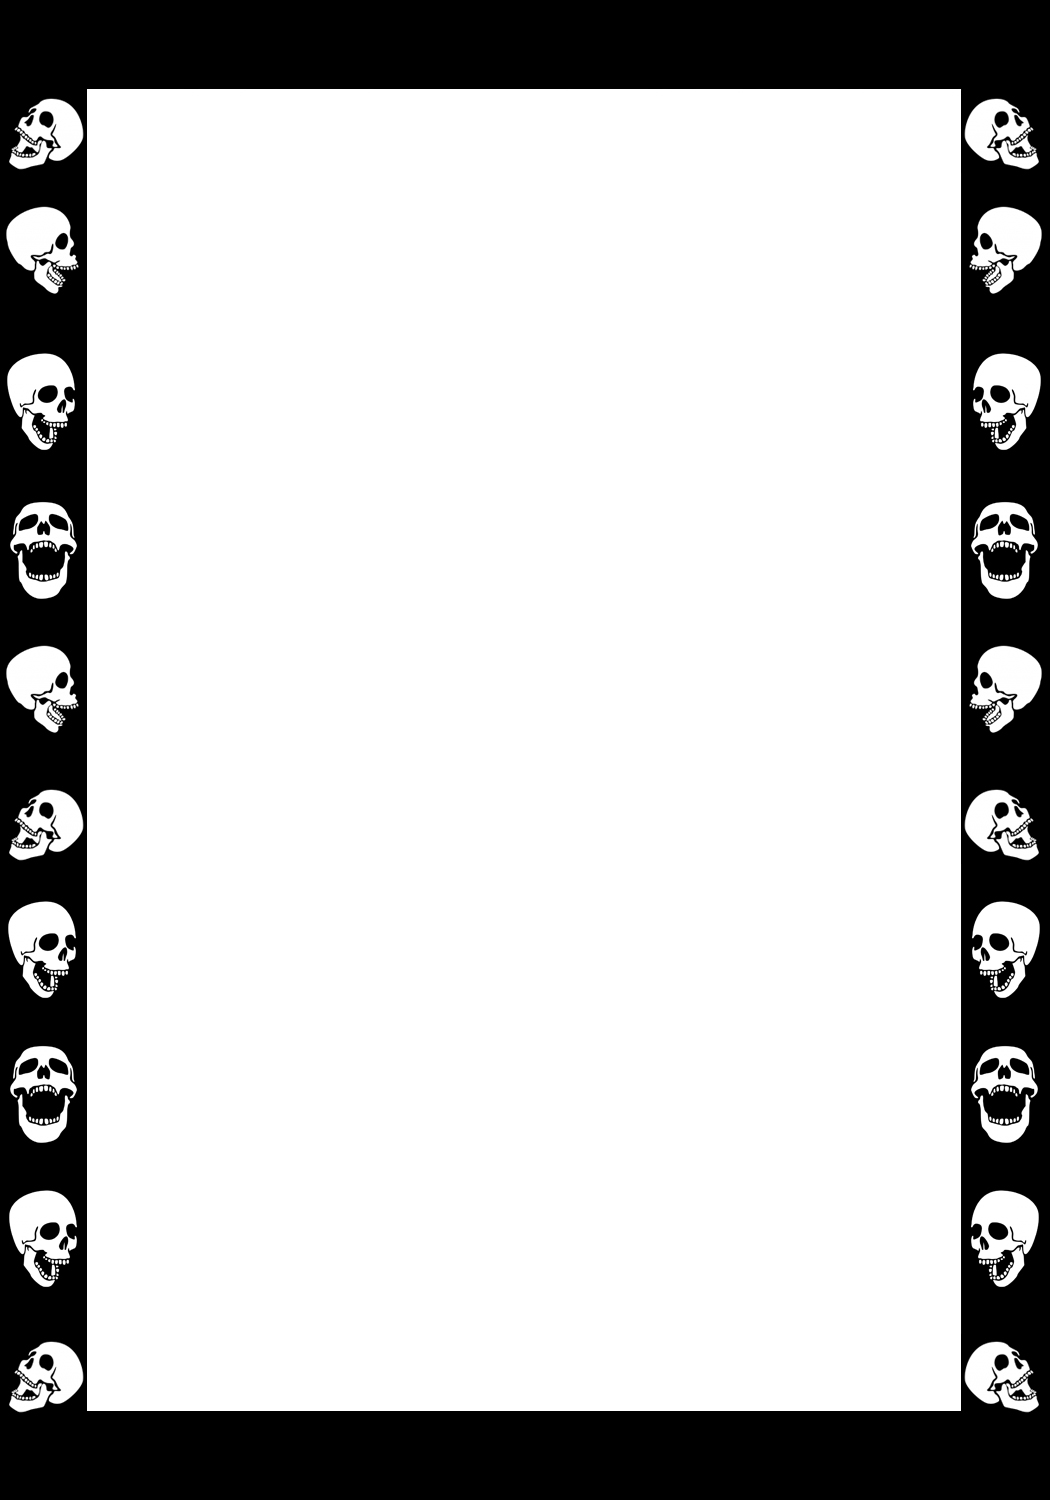 Scary Halloween frame with skulls